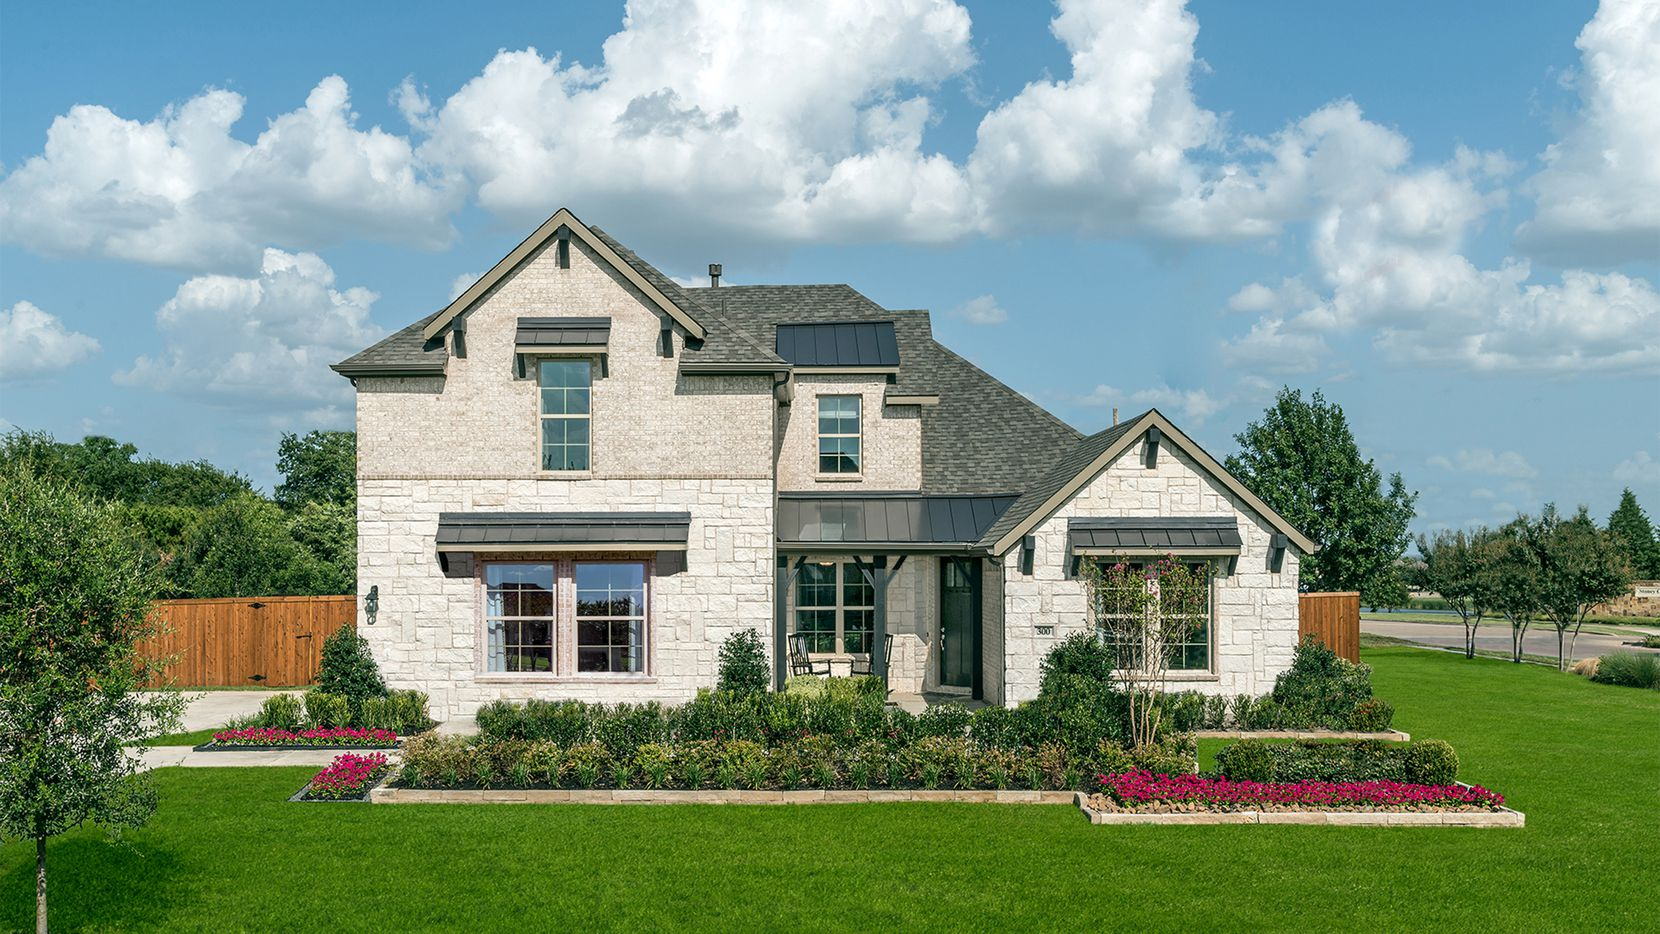 All designs by Beazer Homes in Dallas are being built to the highest level of air quality and energy efficiency, said a company spokesperson.